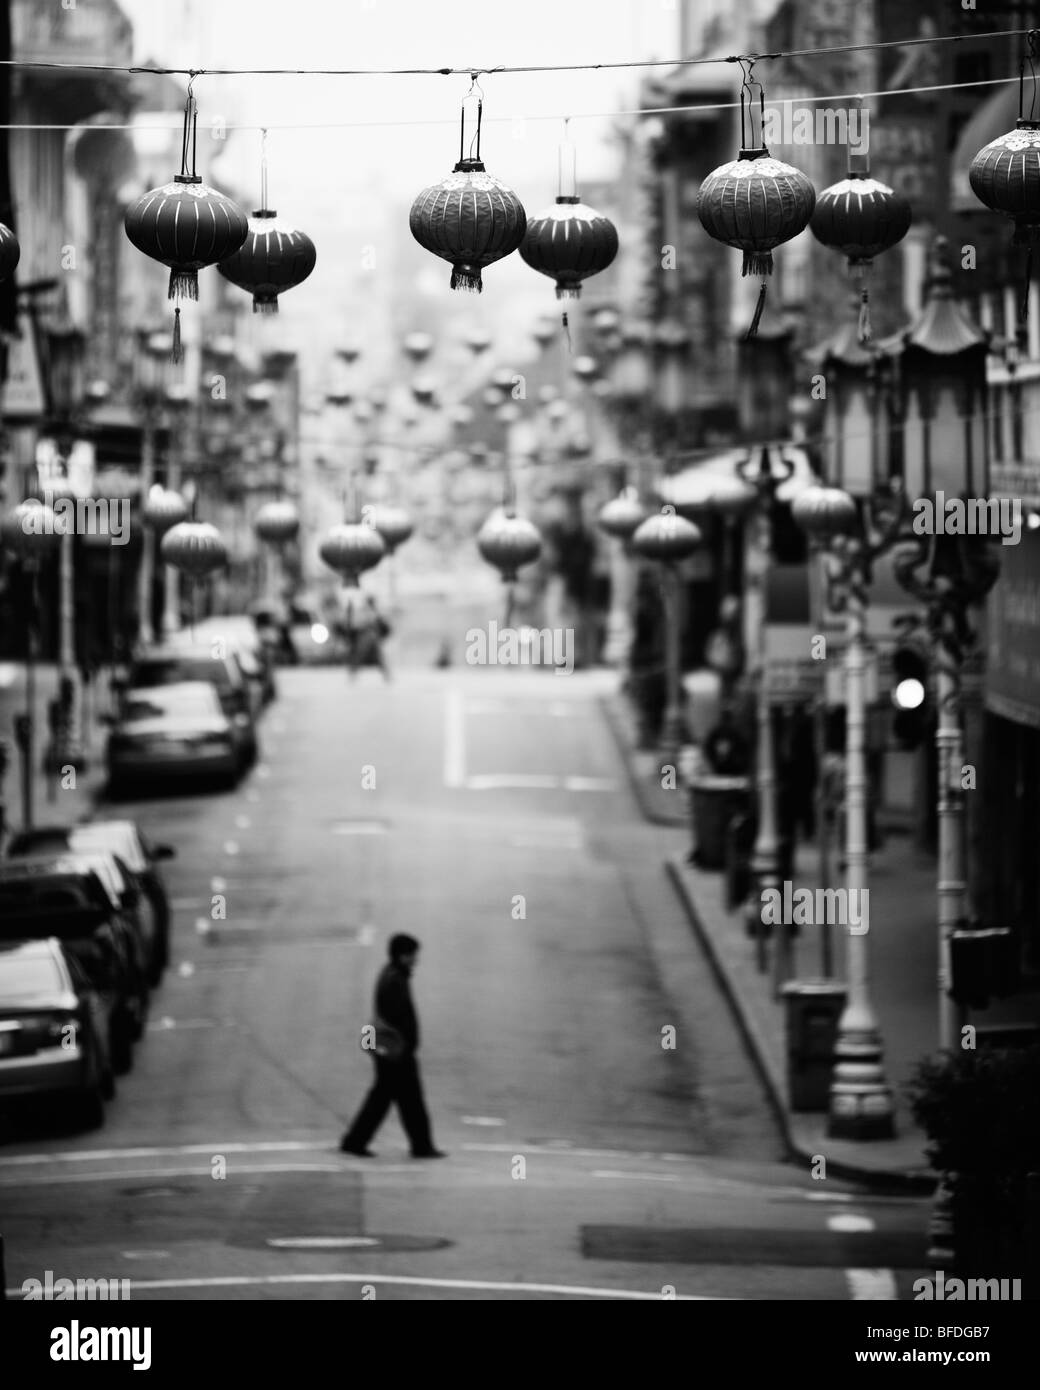 A person walking across  Grant Avenue in the early morning in Chinatown, San Francisco, California. - Stock Image